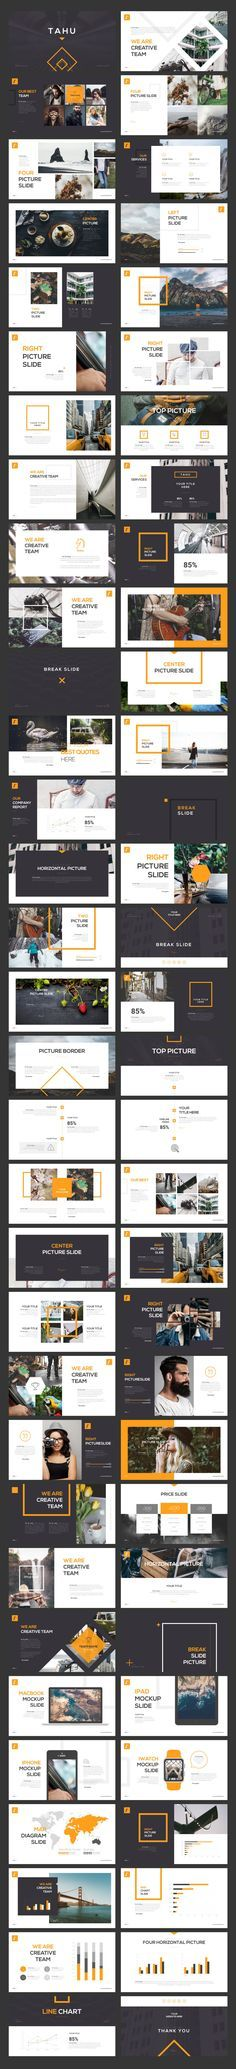 This is an unique presentation template for commercial enterprise or personal use, one of creative industry, business, technology and many more. If you're looking for unique,different design with profesional presentation get this presentation now!